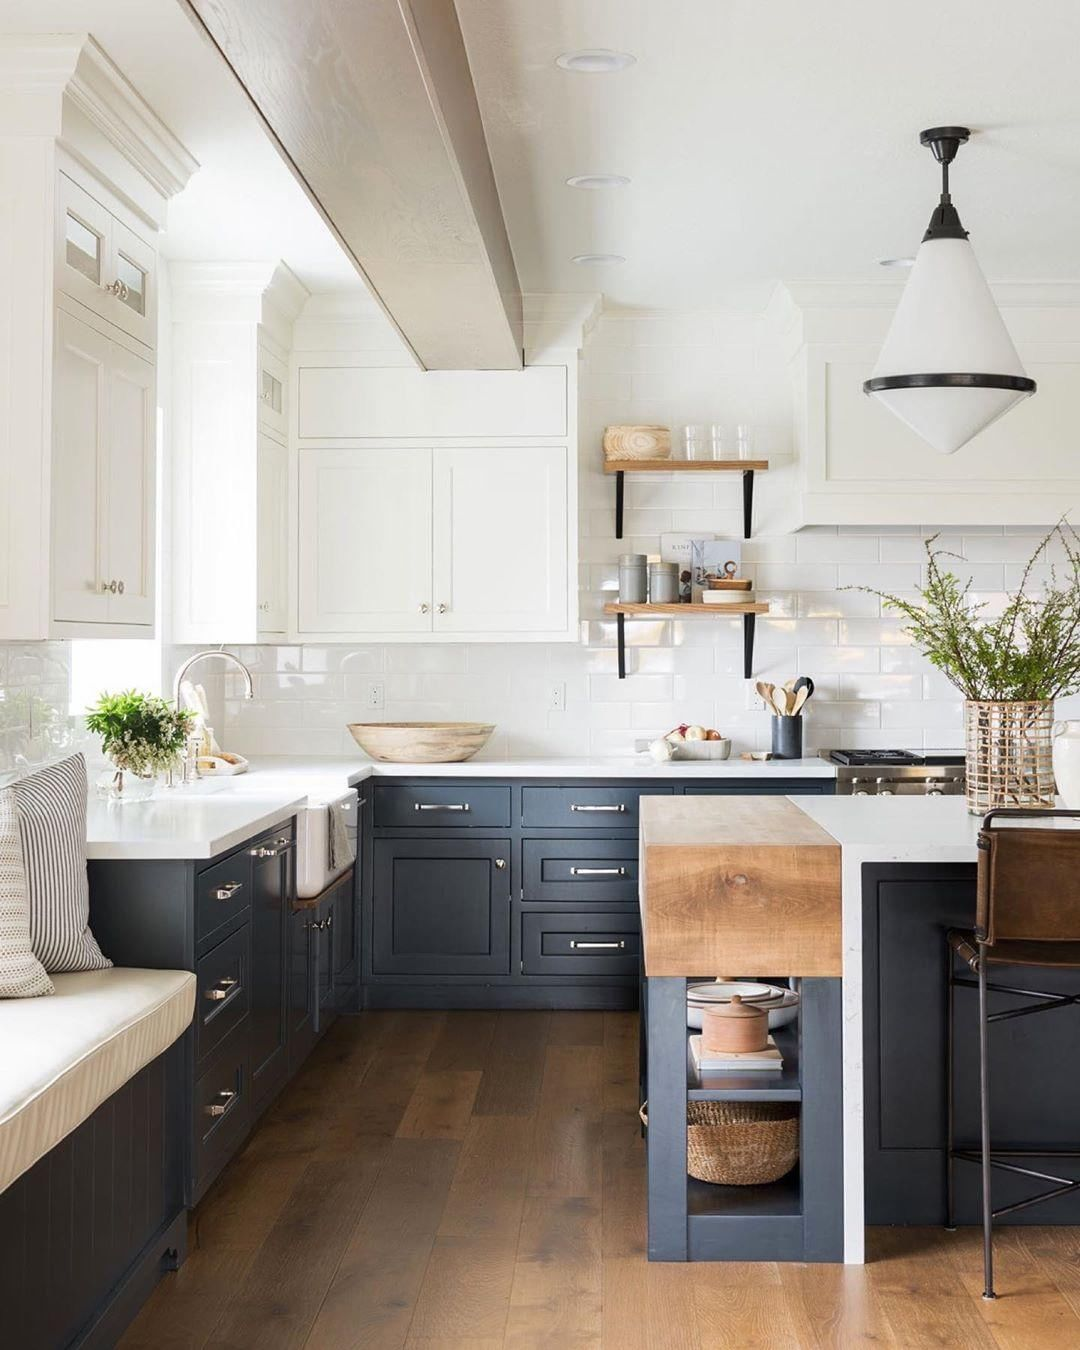 Candy Scott Chicago Designer On Instagram What Dinner Would You Like To Whip Up In This In 2020 Kitchen Inspirations Farmhouse Kitchen Inspiration Kitchen Cabinets